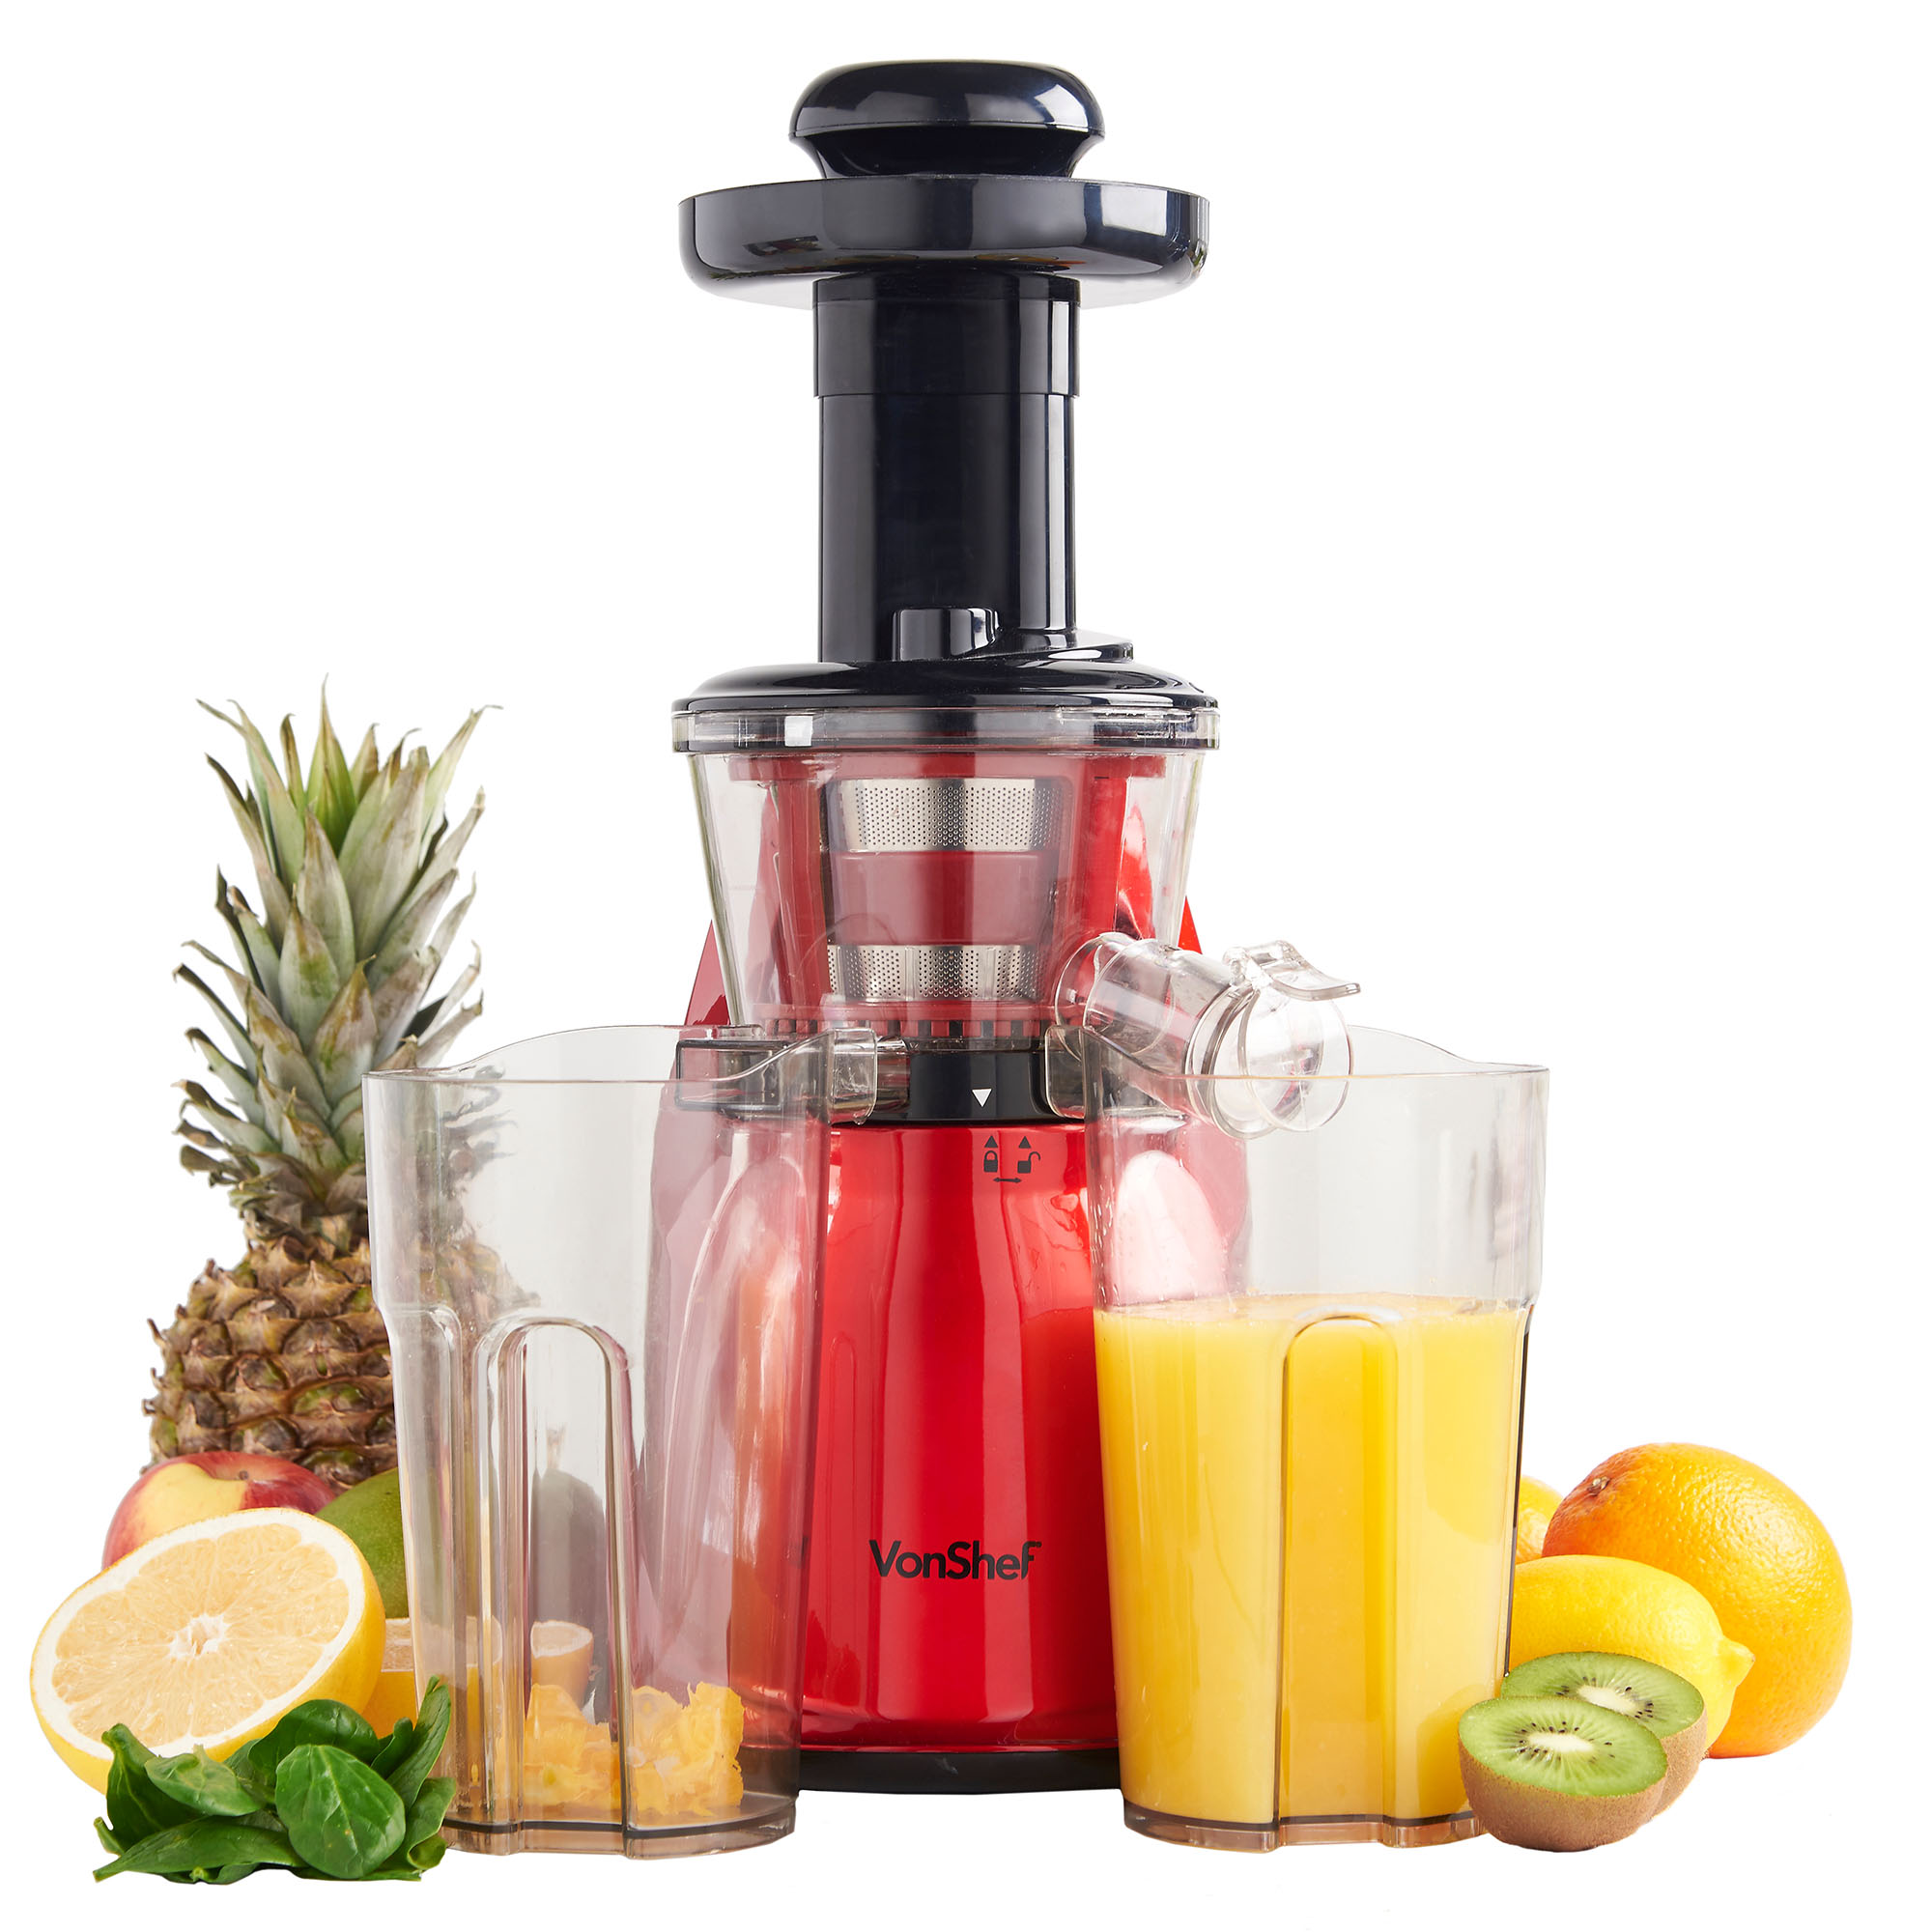 Best Masticating Juicer For Vegetables : vonShef Premium Slow Masticating Juicer Electric vegetable Juice Extractor - Red eBay